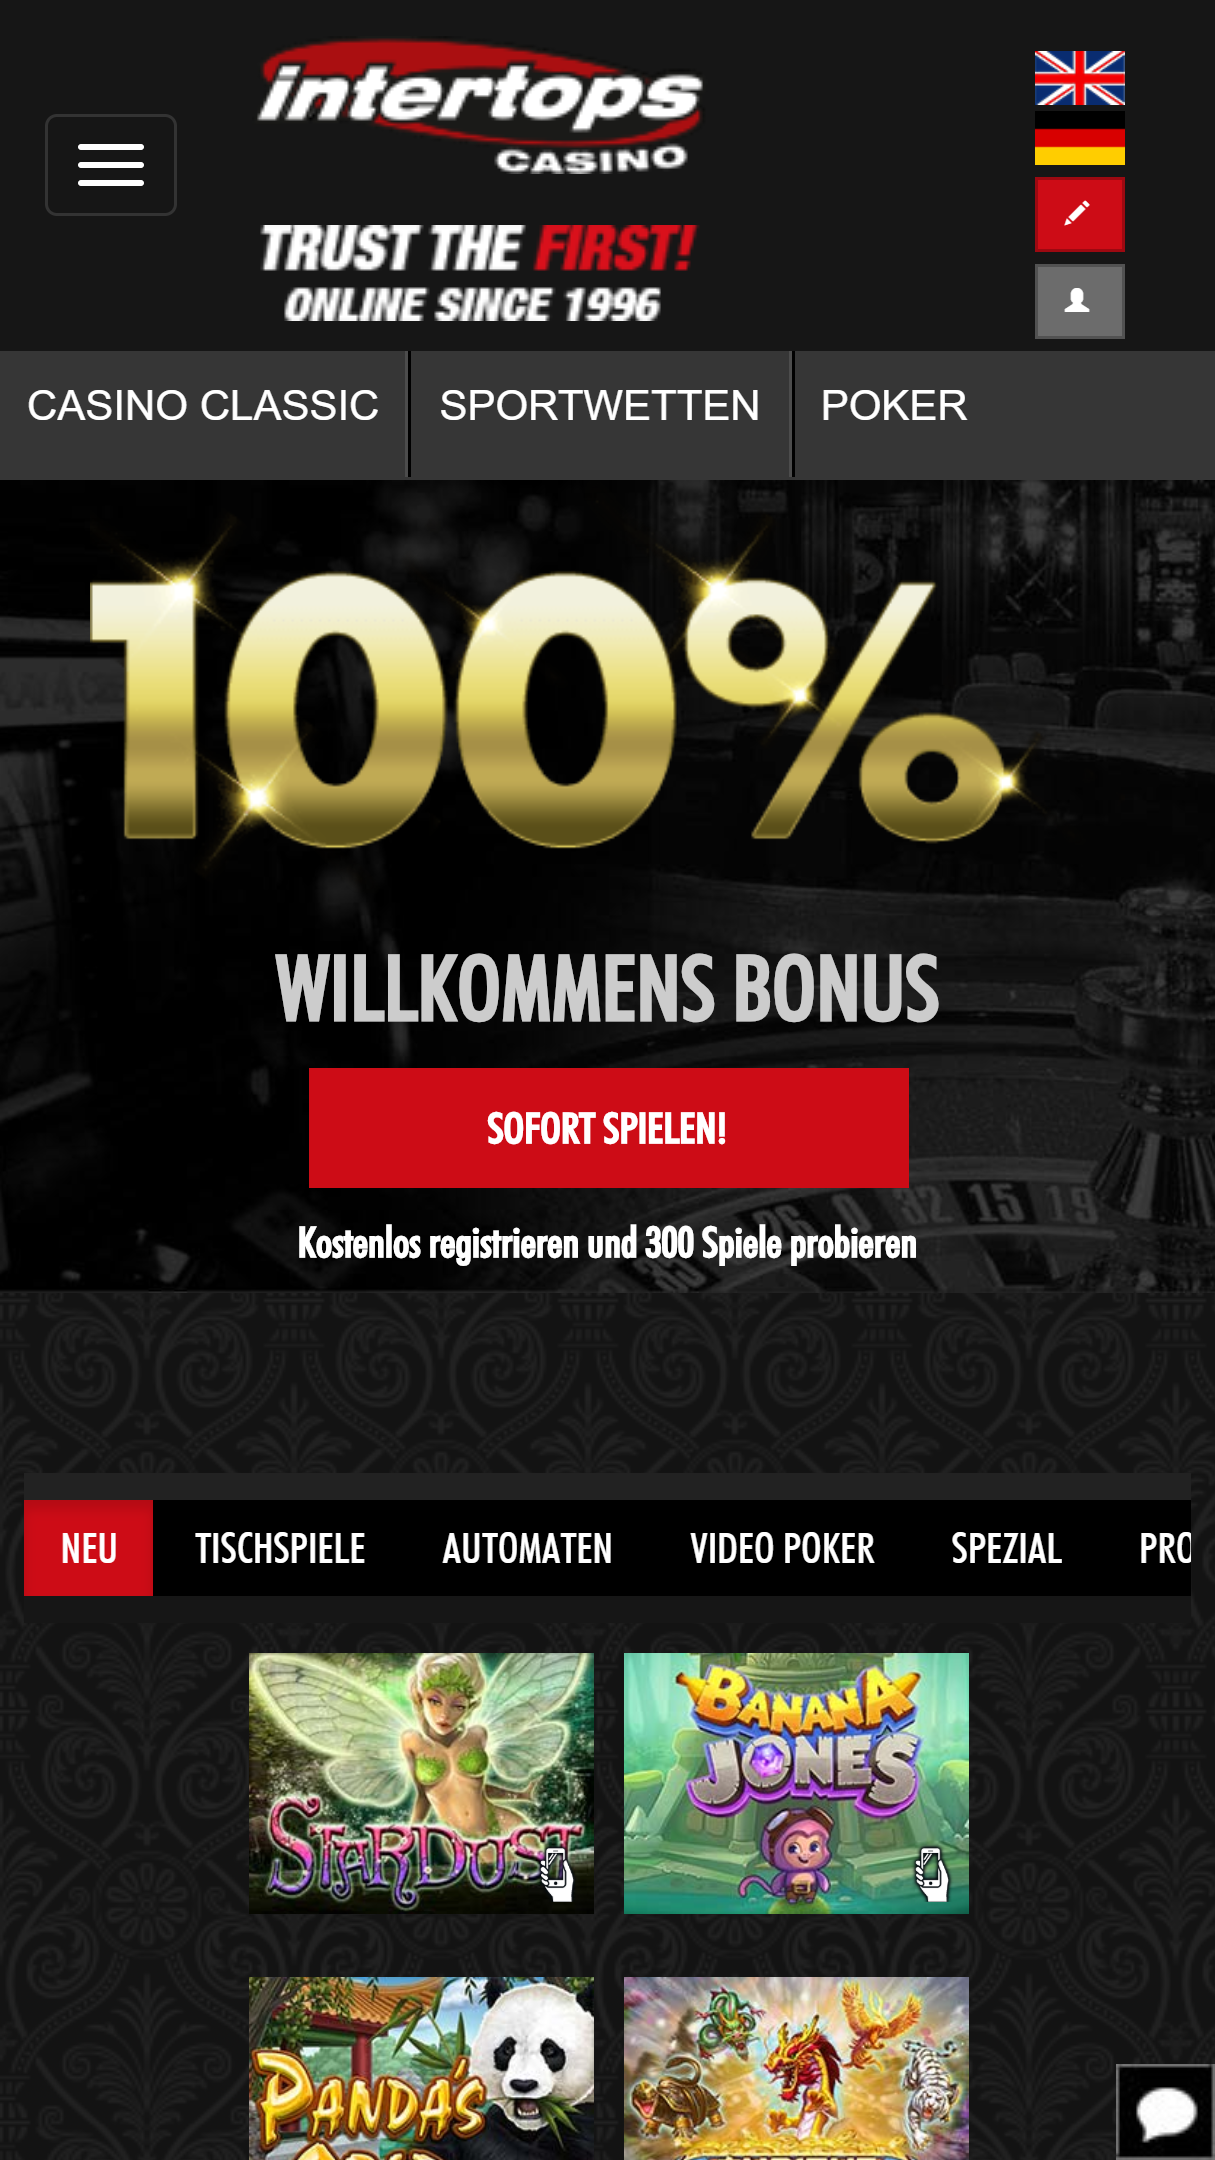 Intertops Casino App Homepage